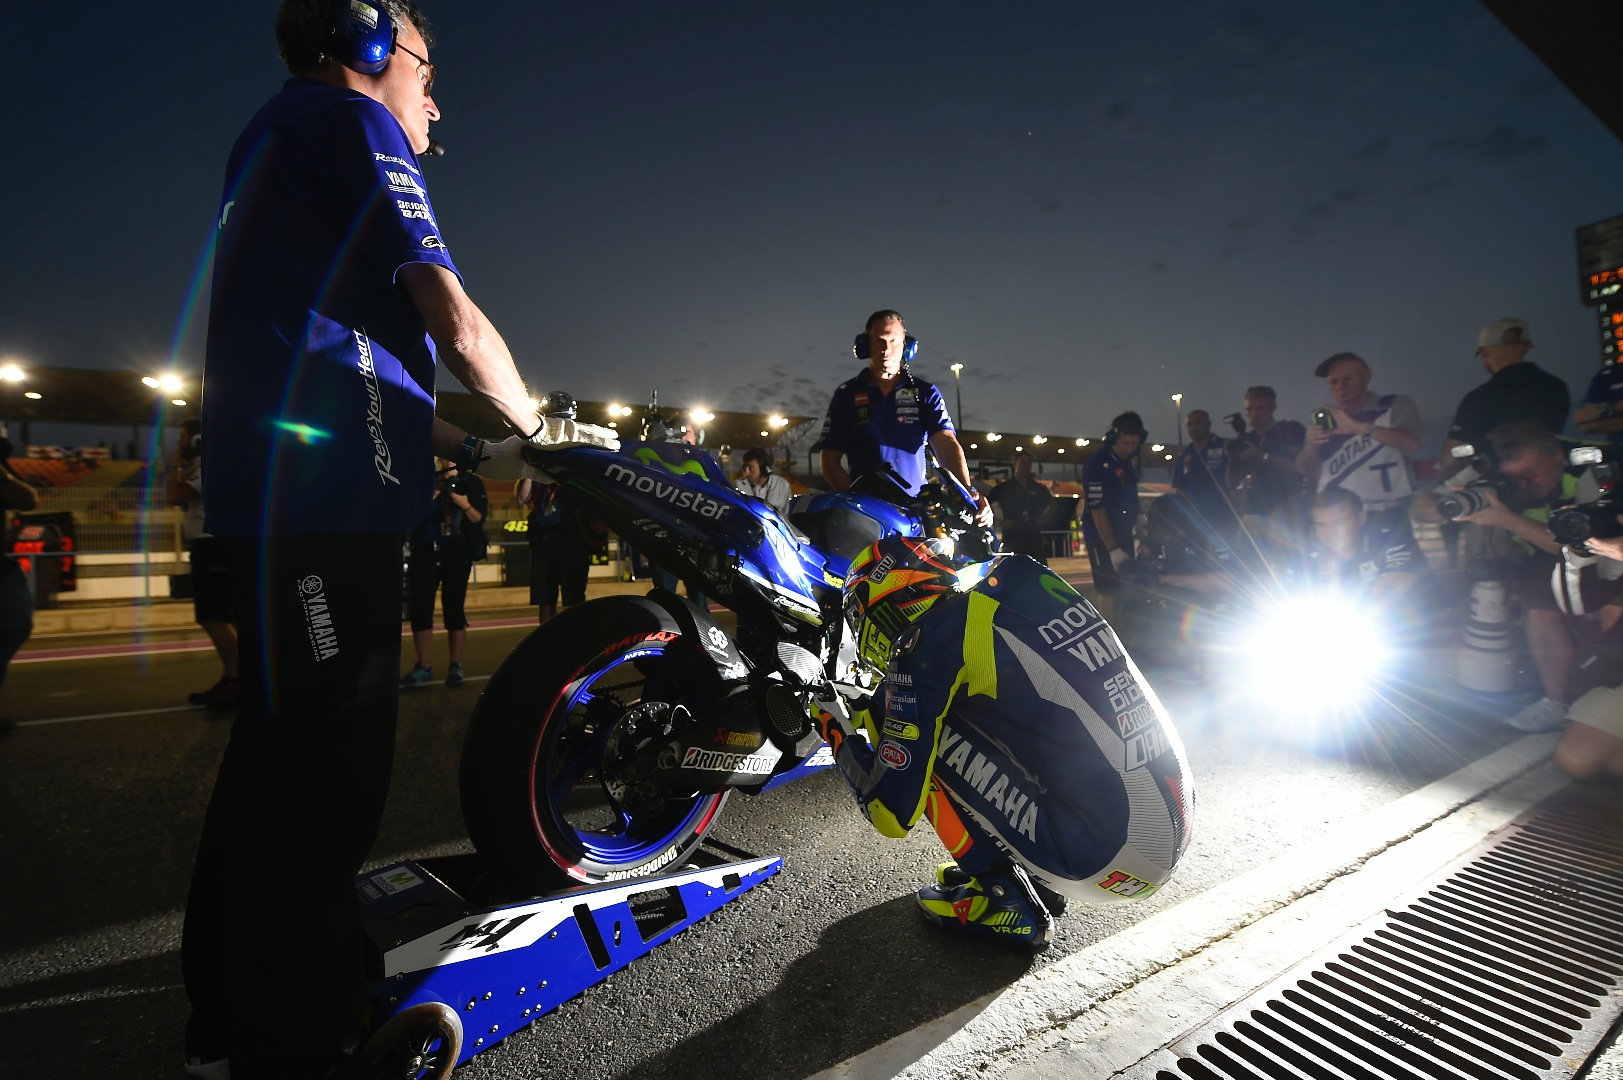 Challenging Free Practice Sessions for Movistar Yamaha MotoGP at Qatar - MotorcycleDaily.com ...